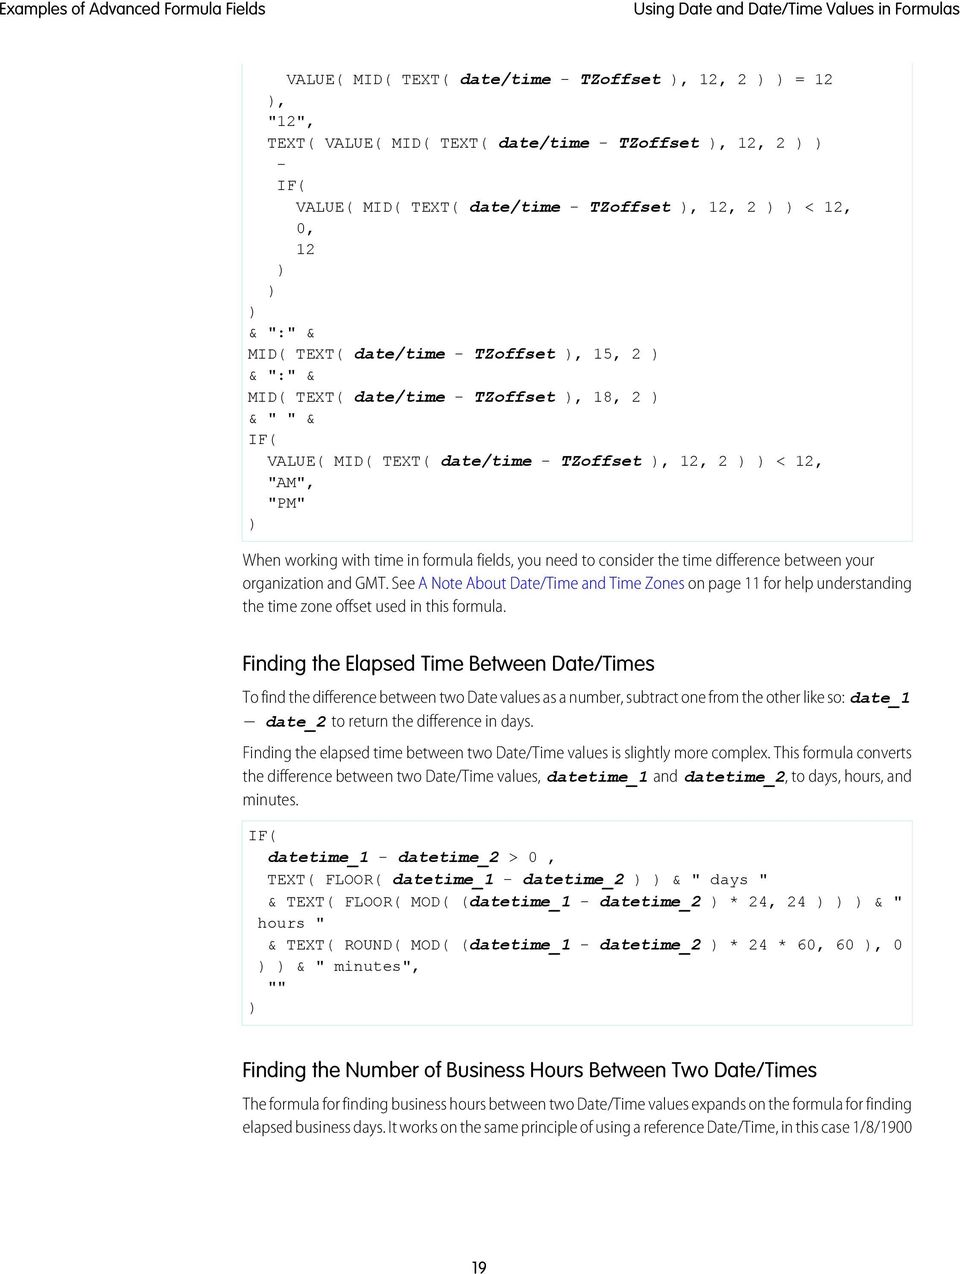 EXAMPLES OF ADVANCED FORMULA FIELDS - PDF